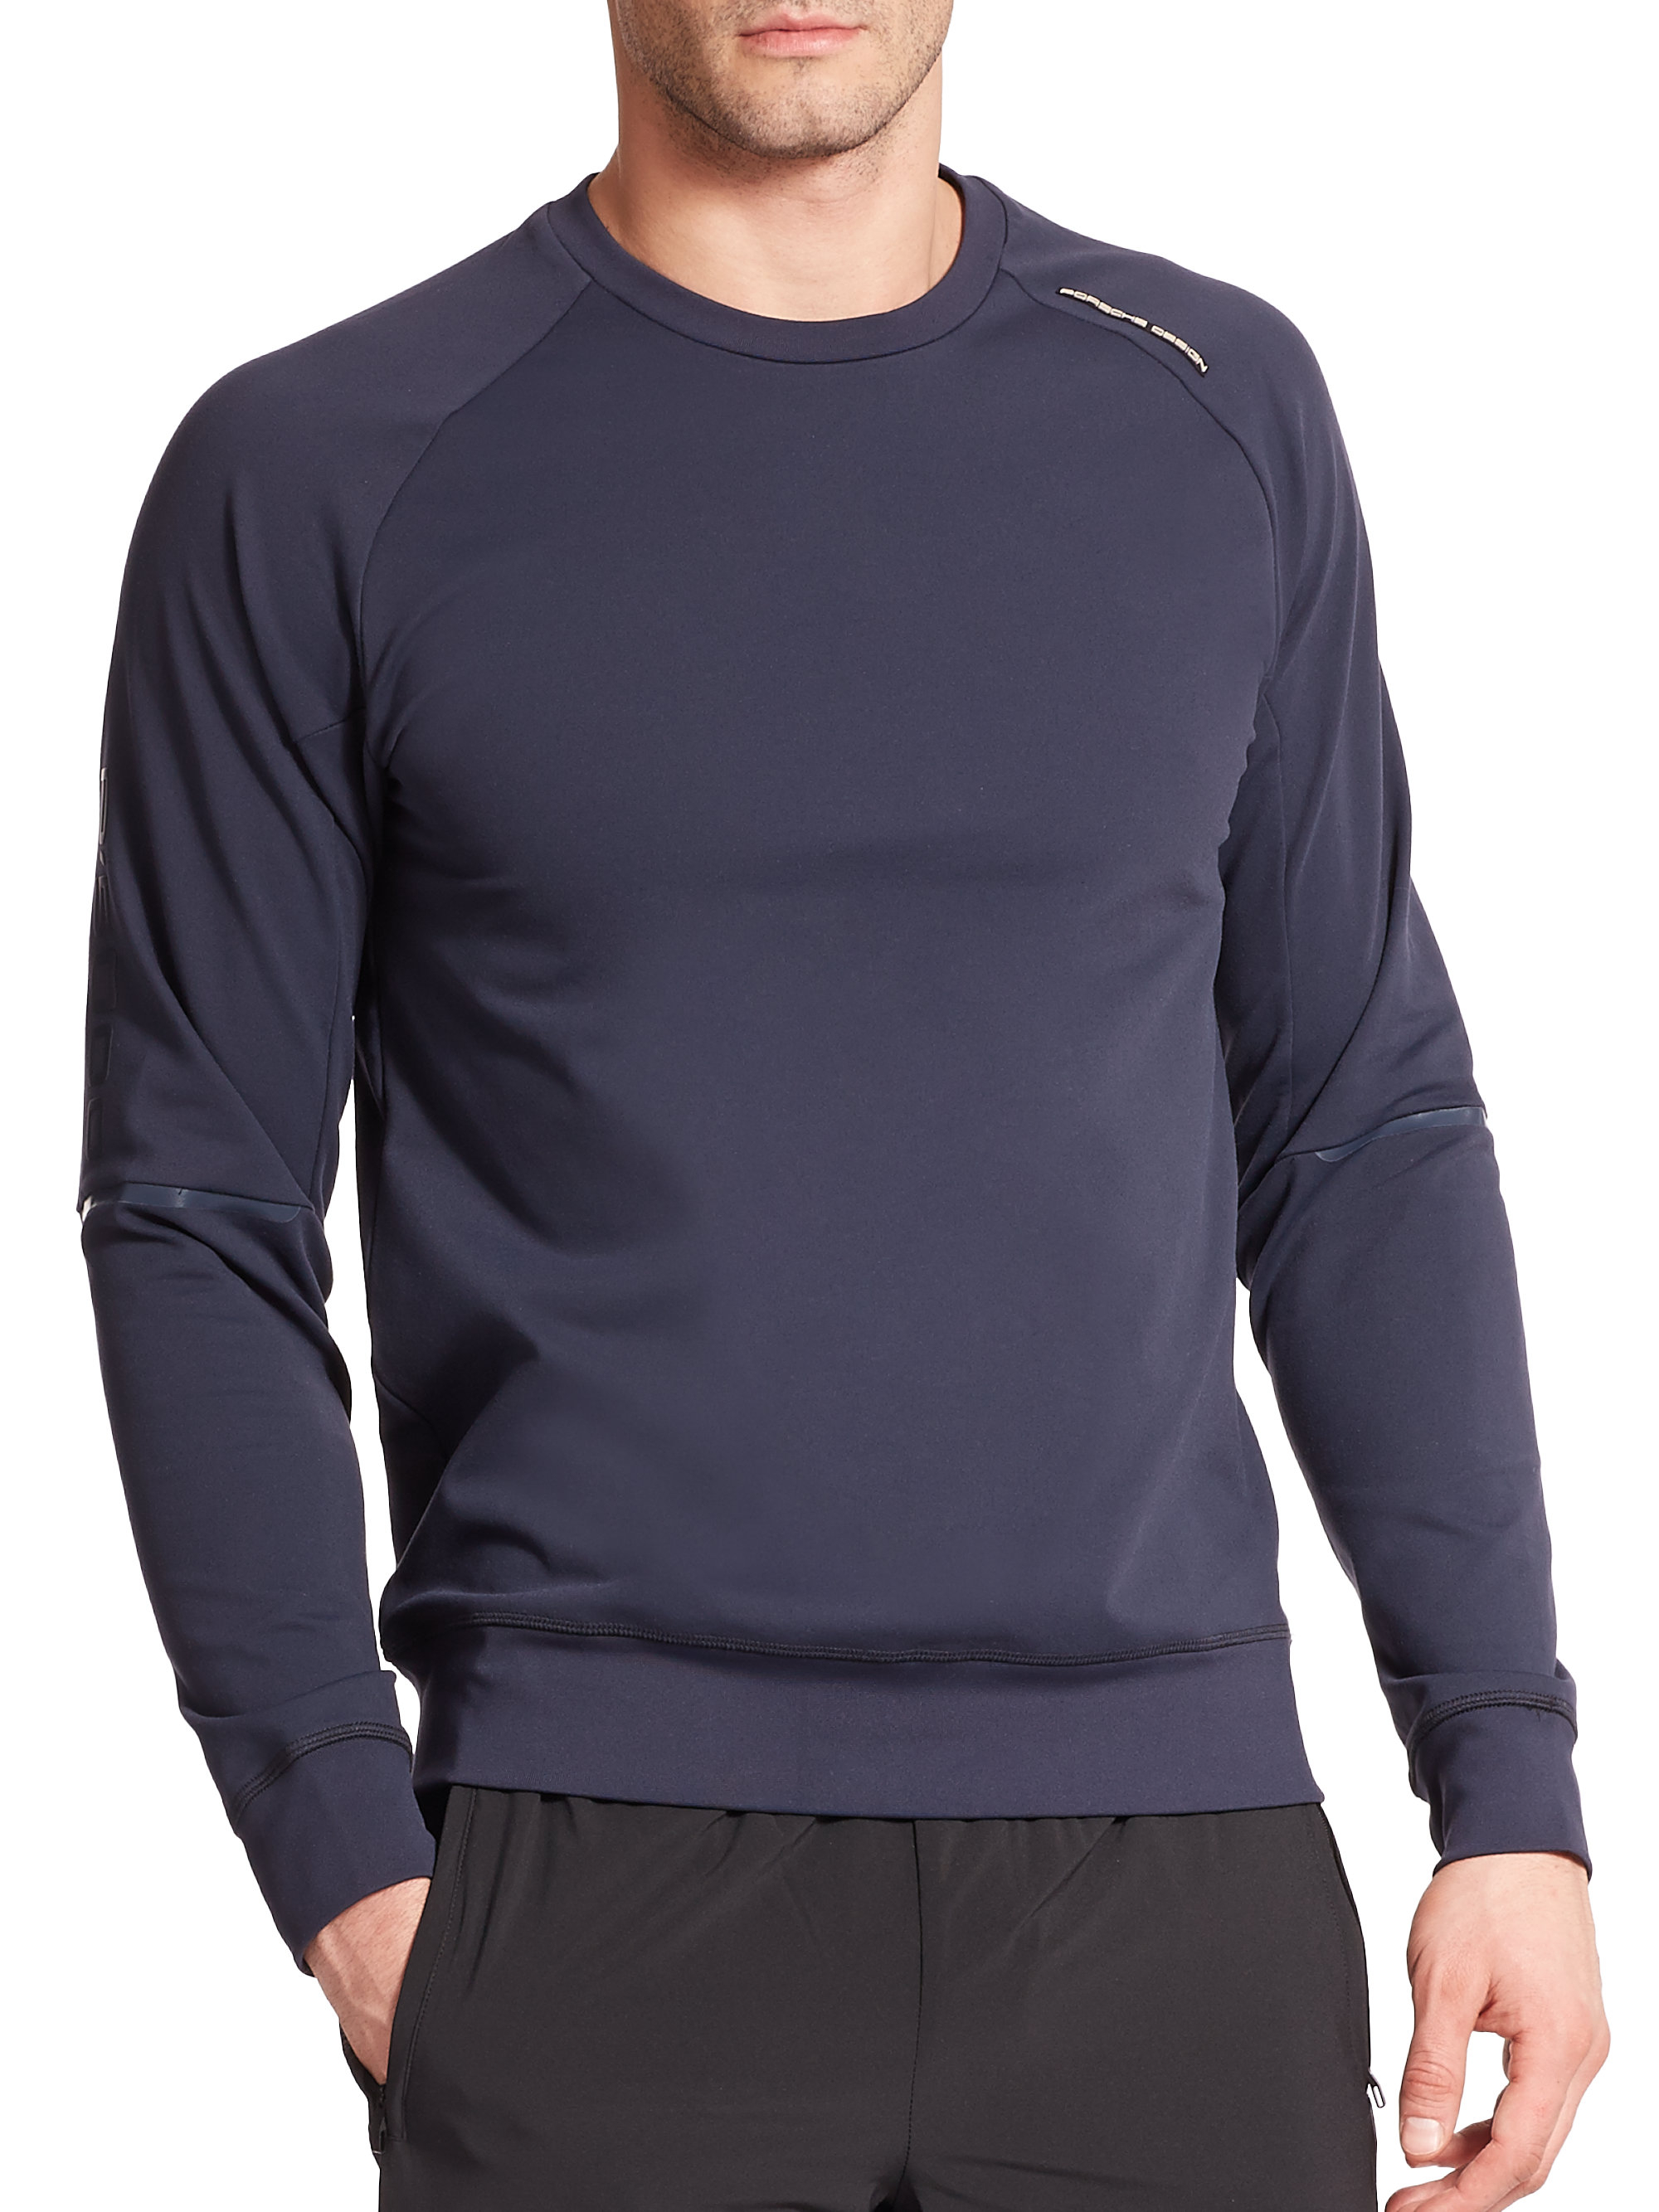 Porsche Design Relax Sweatshirt In Blue For Men Lyst